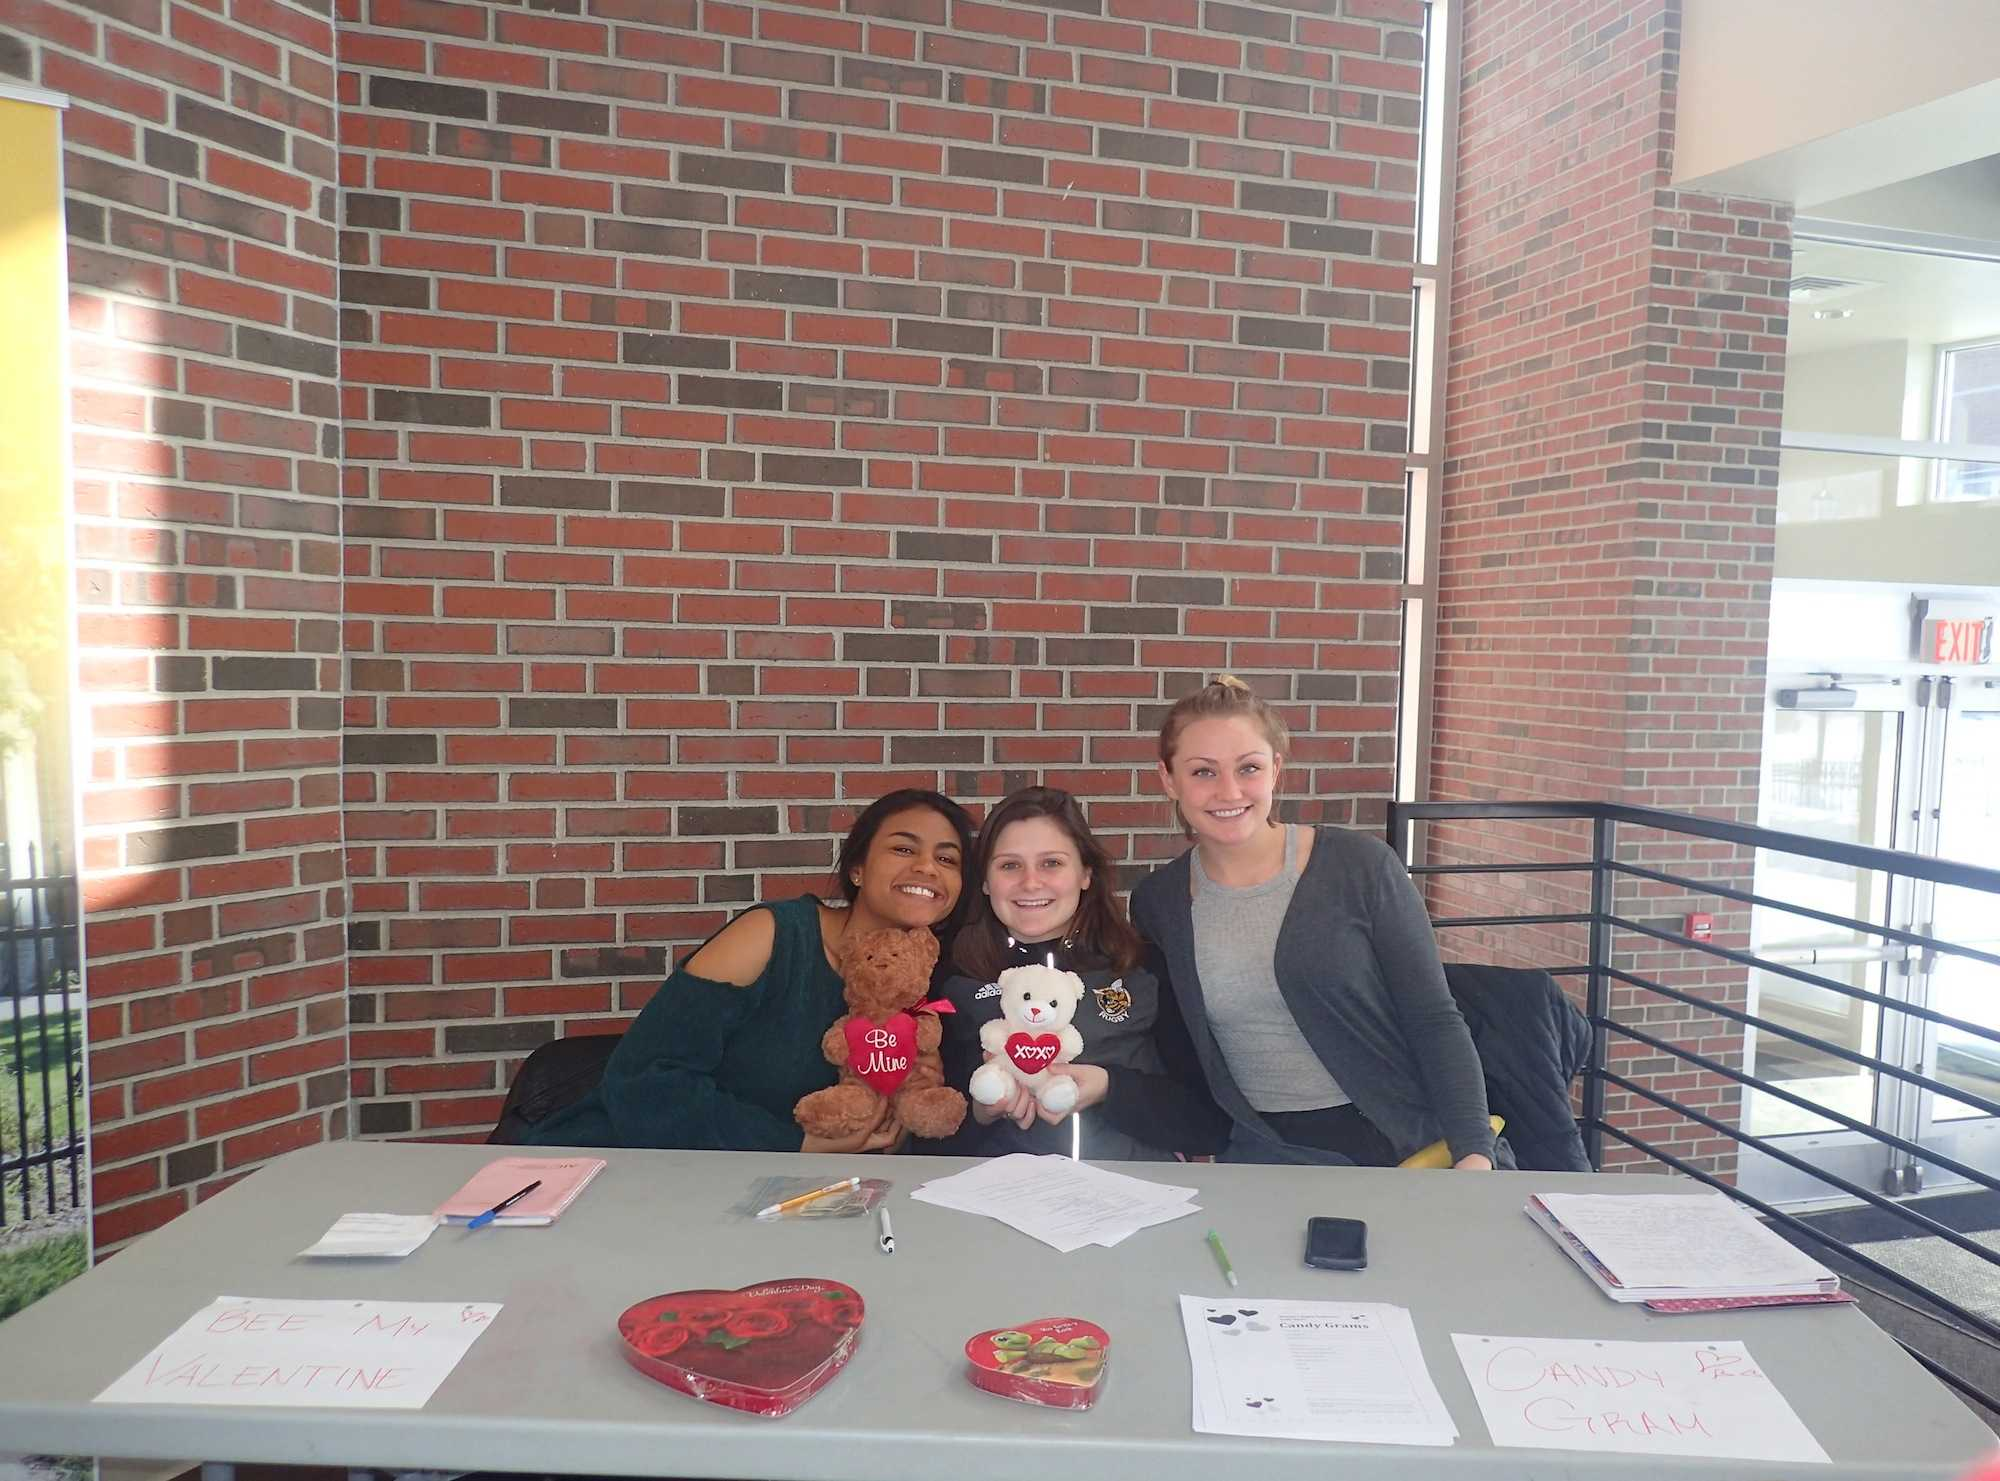 Shanell Russo, Ally Pothier and Molly Plante helping raise money for the women's rugby team.